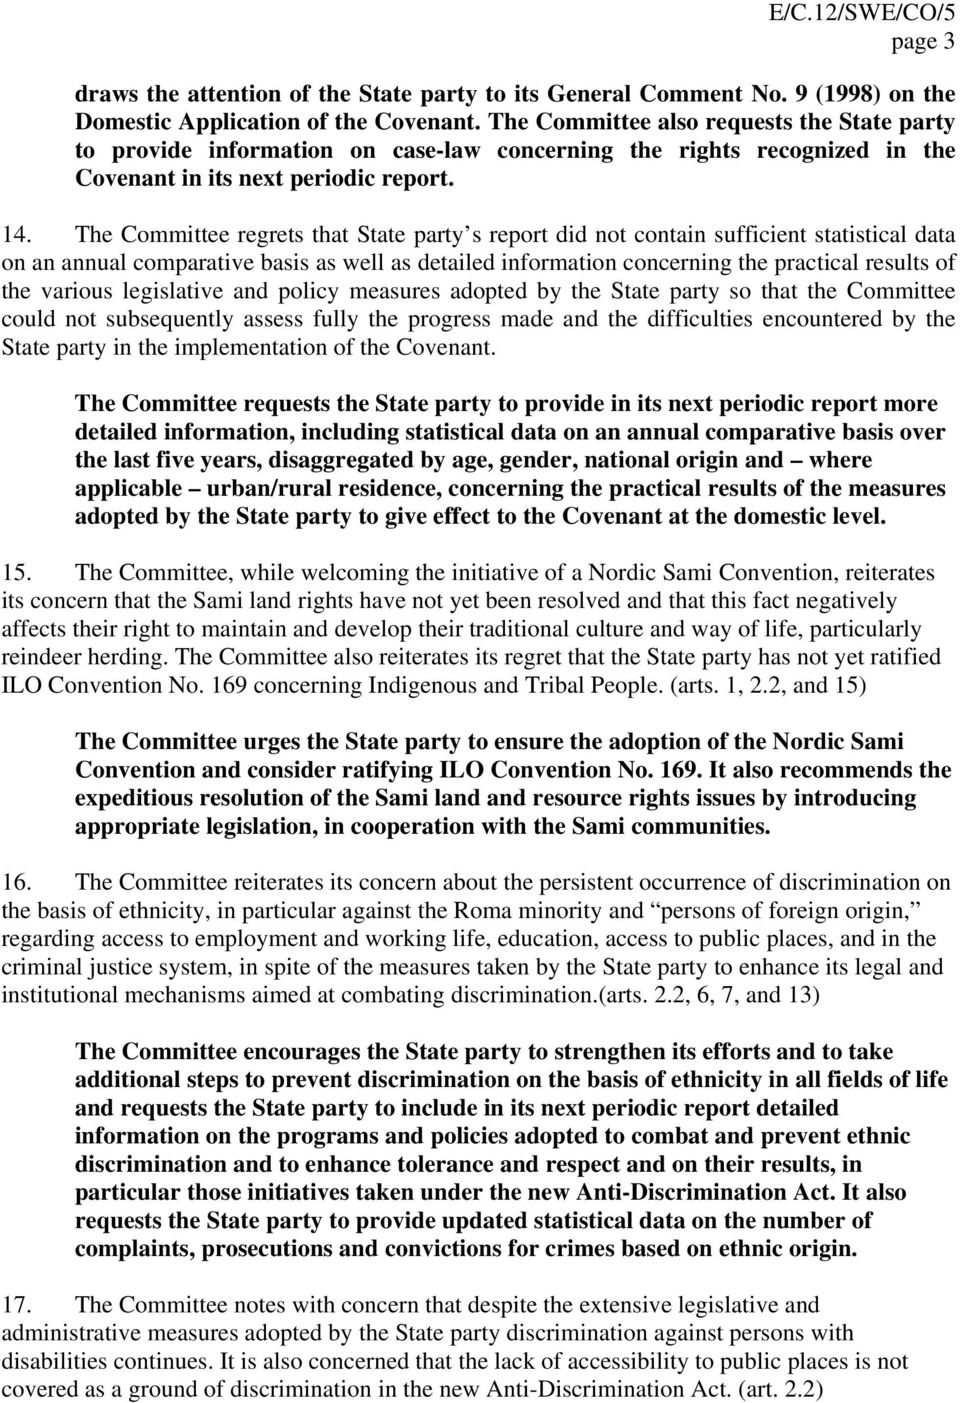 The Committee regrets that State party s report did not contain sufficient statistical data on an annual comparative basis as well as detailed information concerning the practical results of the